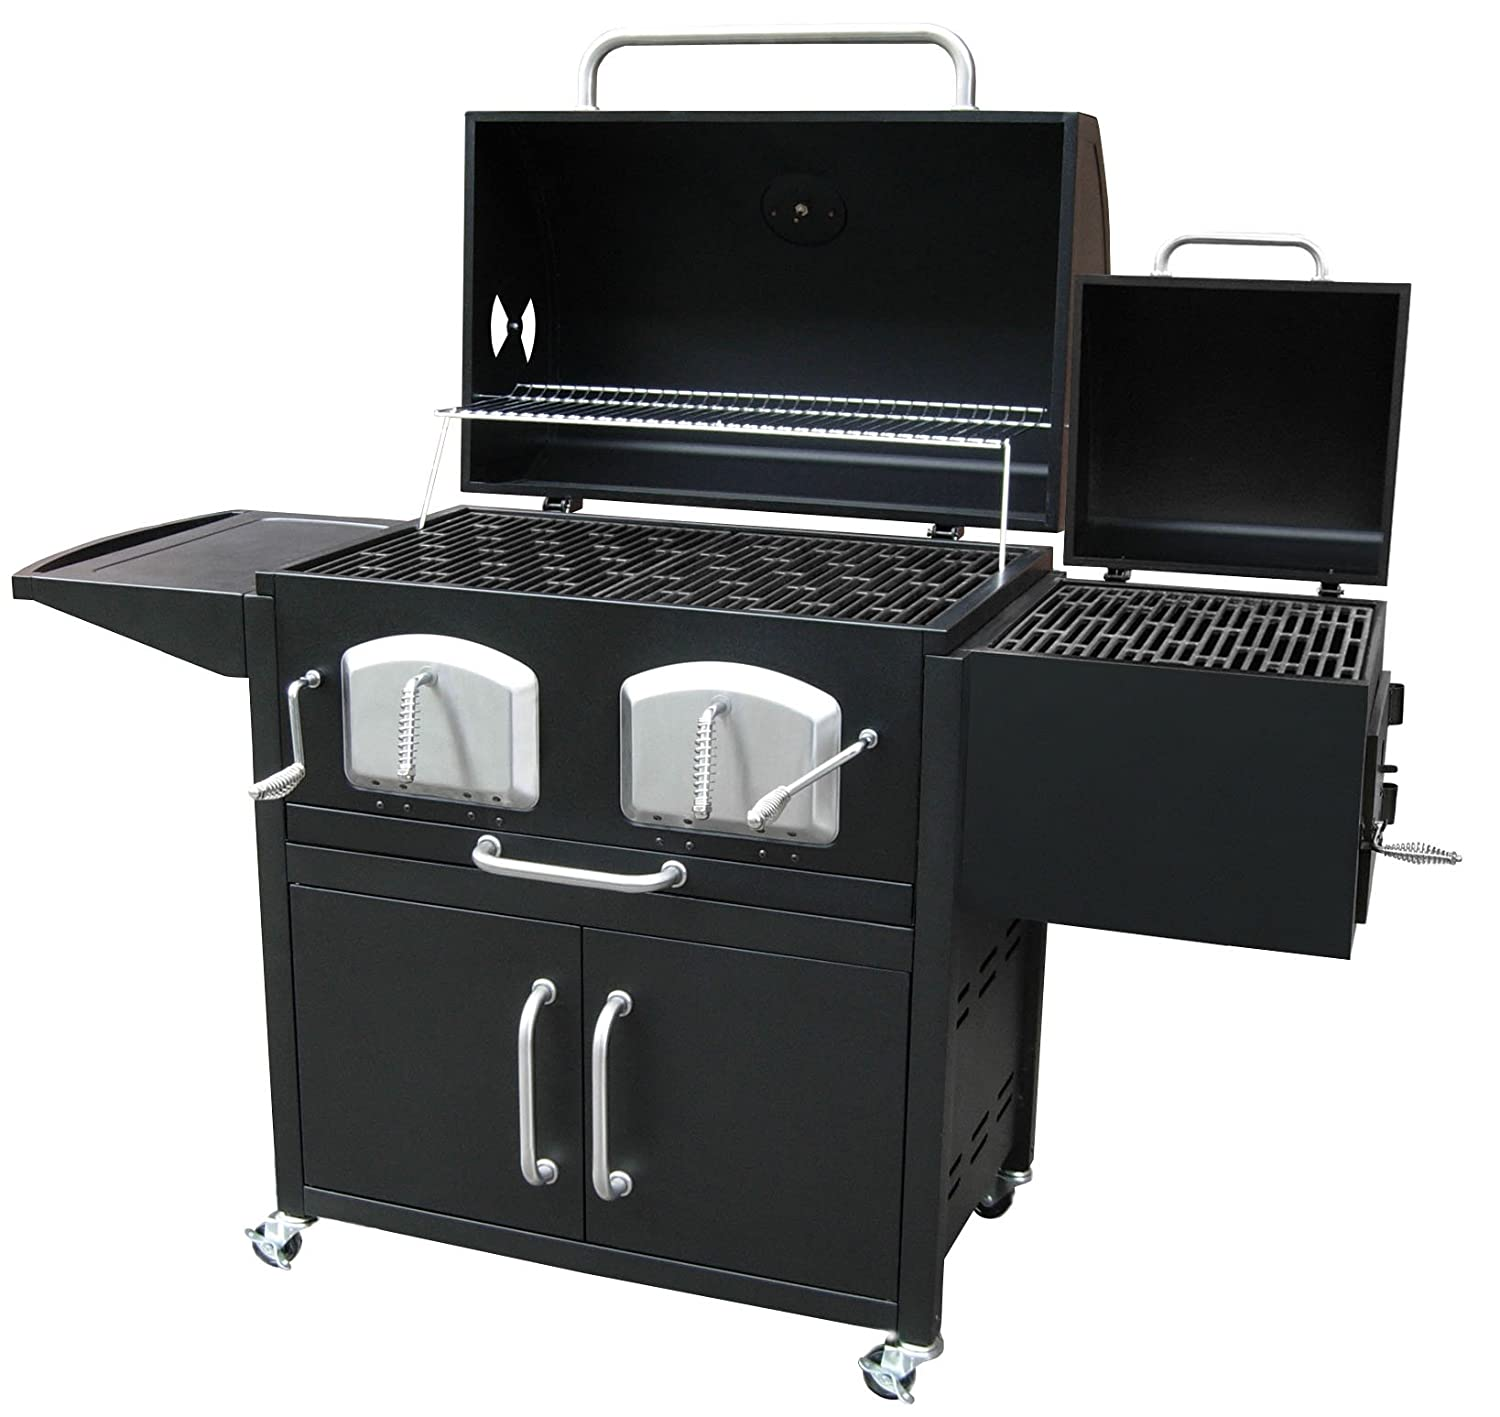 amazoncom landmann smoky mountain bravo premium charcoal grill with offset smoker box grills patio lawn u0026 garden